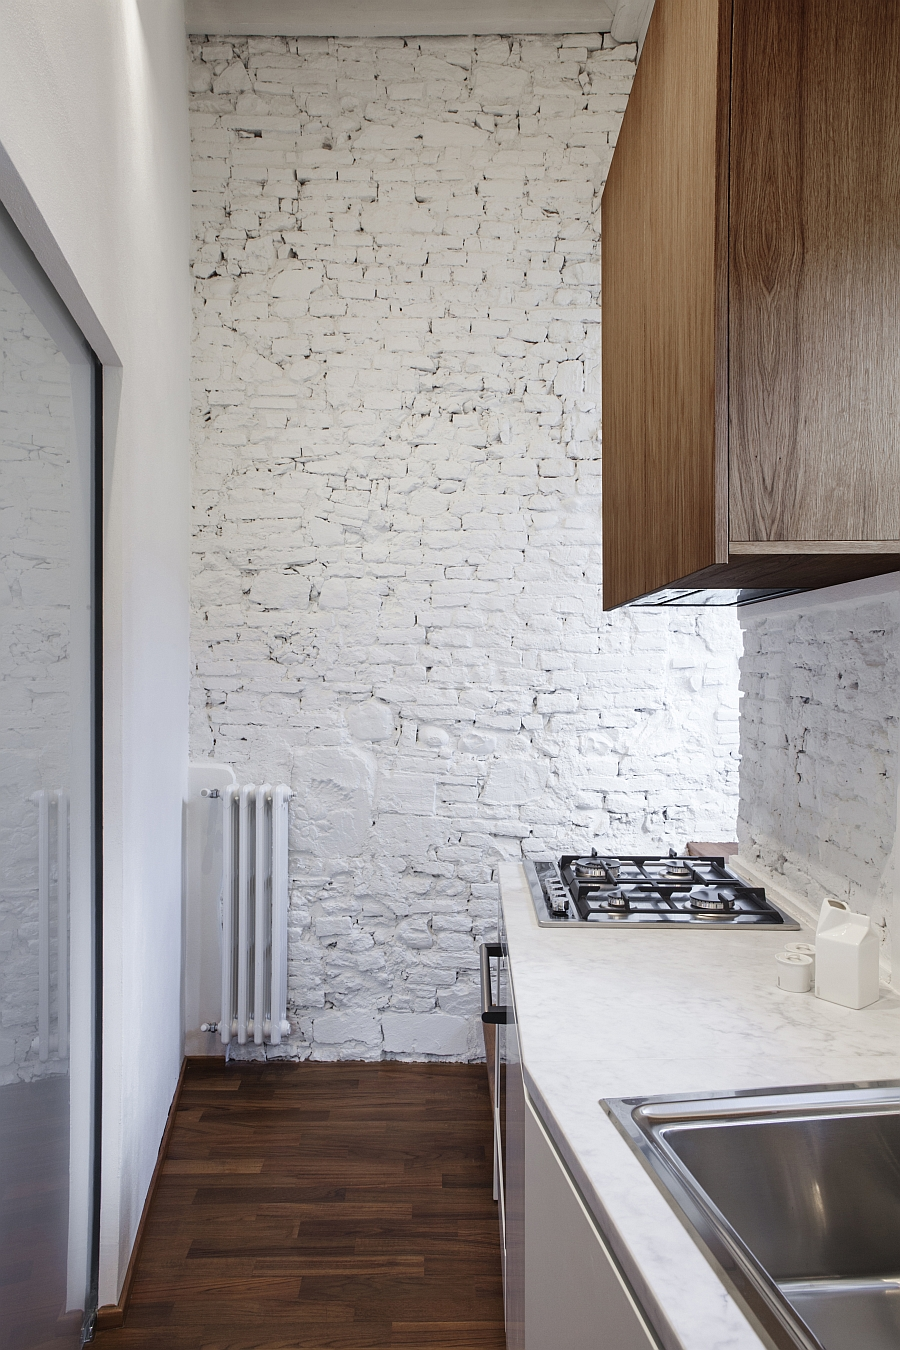 Bright and cheerful kitchen with painted brick walls and carrara marble countertop